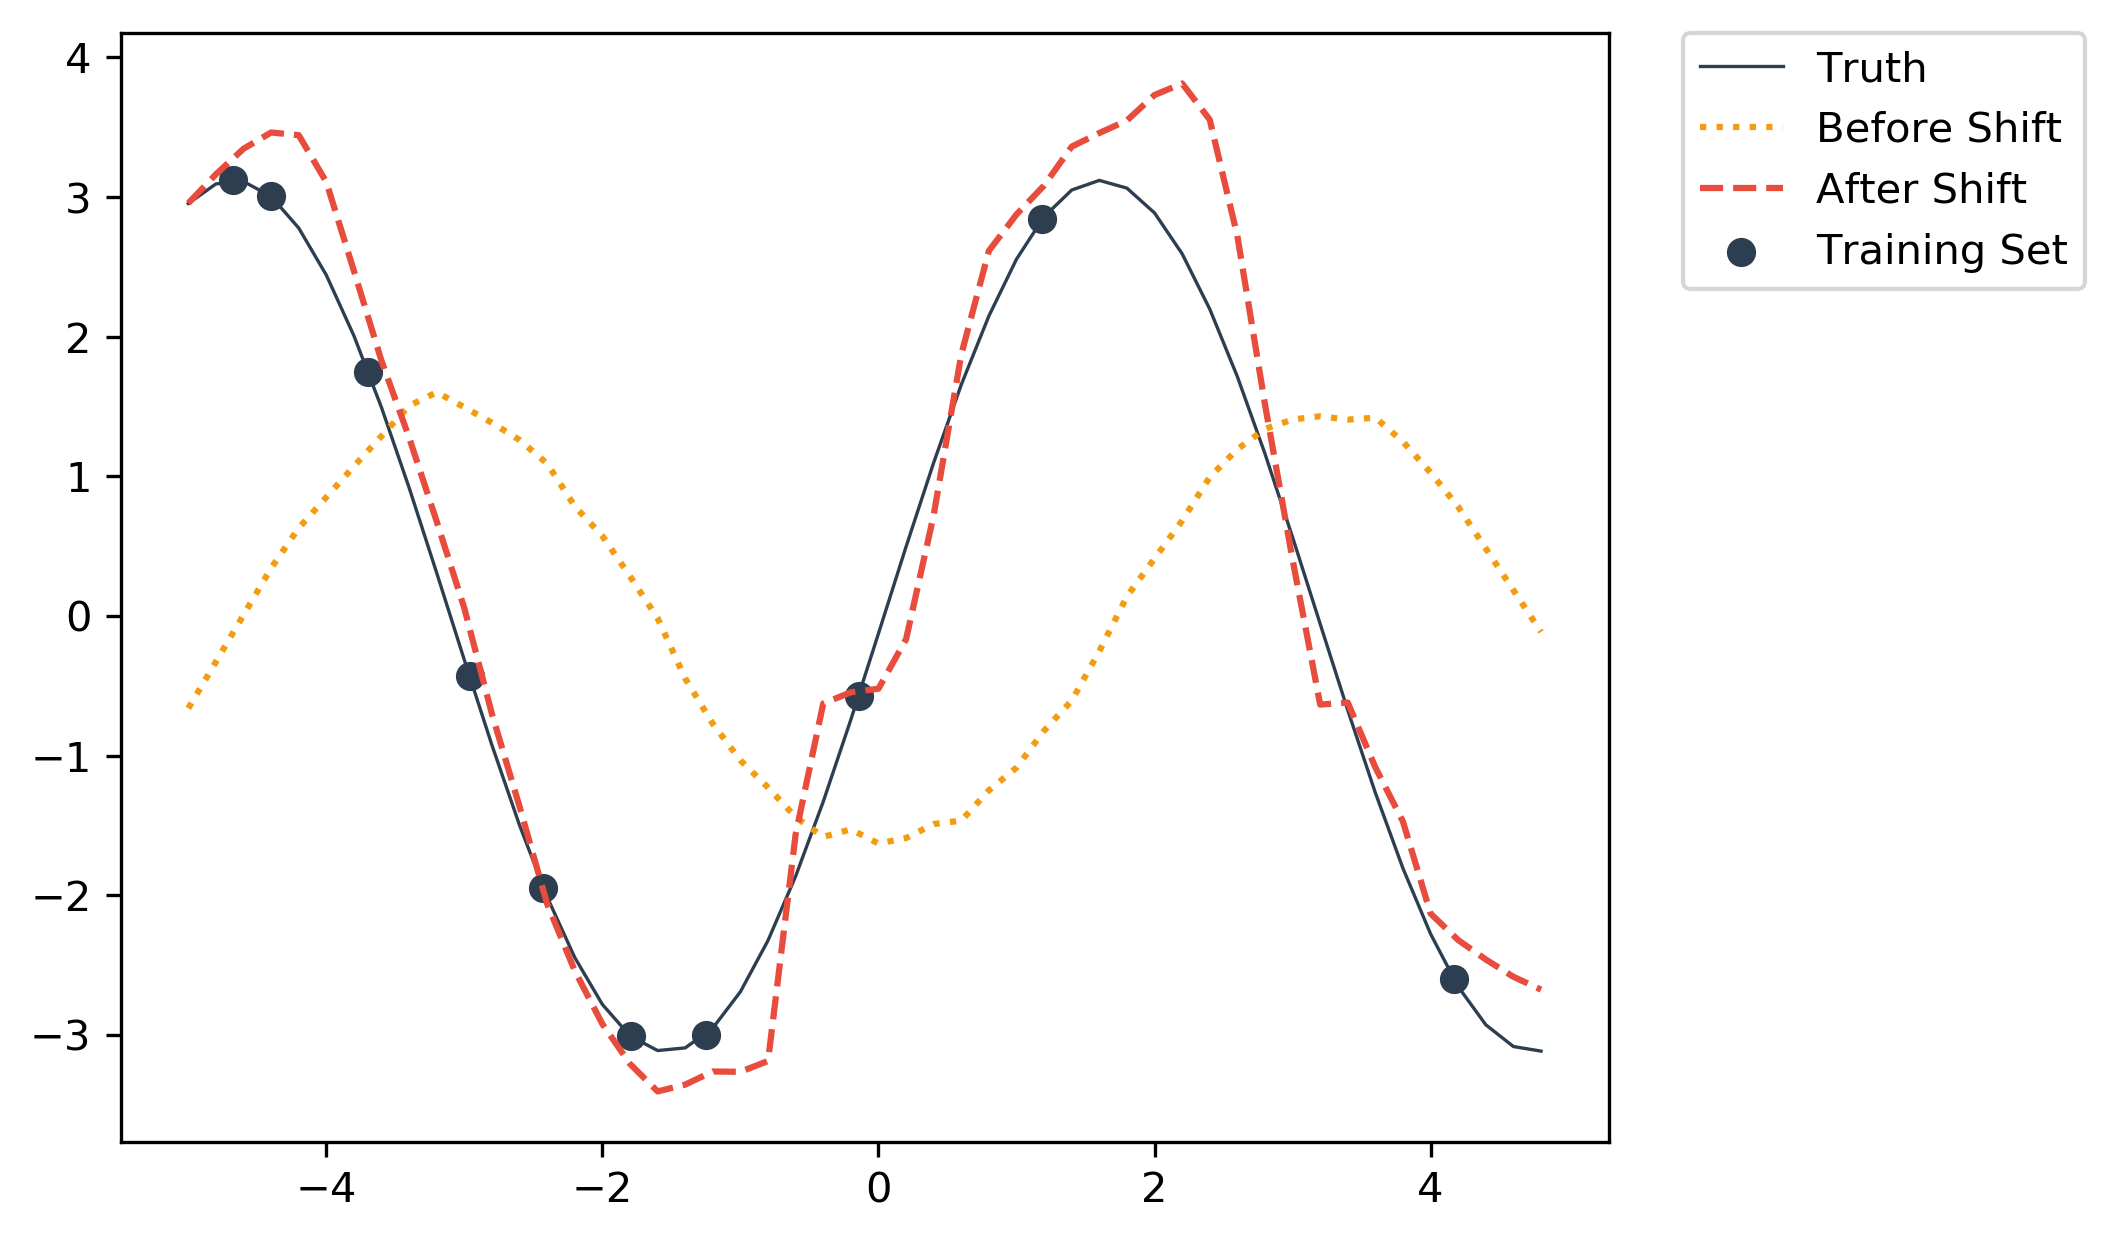 Sample graph that shows output of regression network before and after shift.